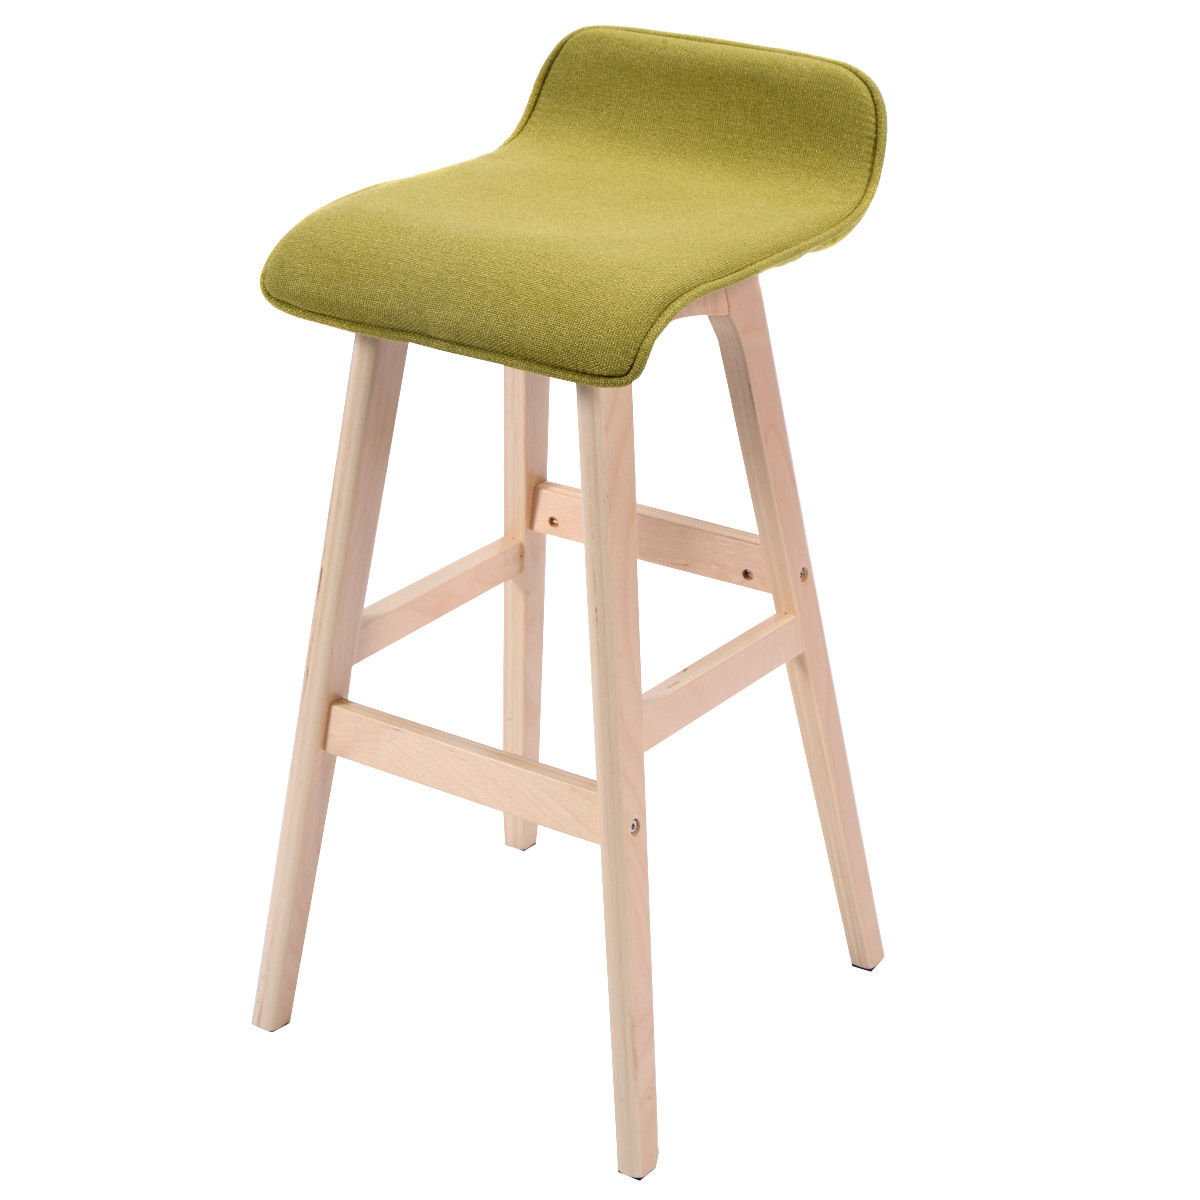 Costway 29 Inch Vintage Wood Bar Stool Dining Chair